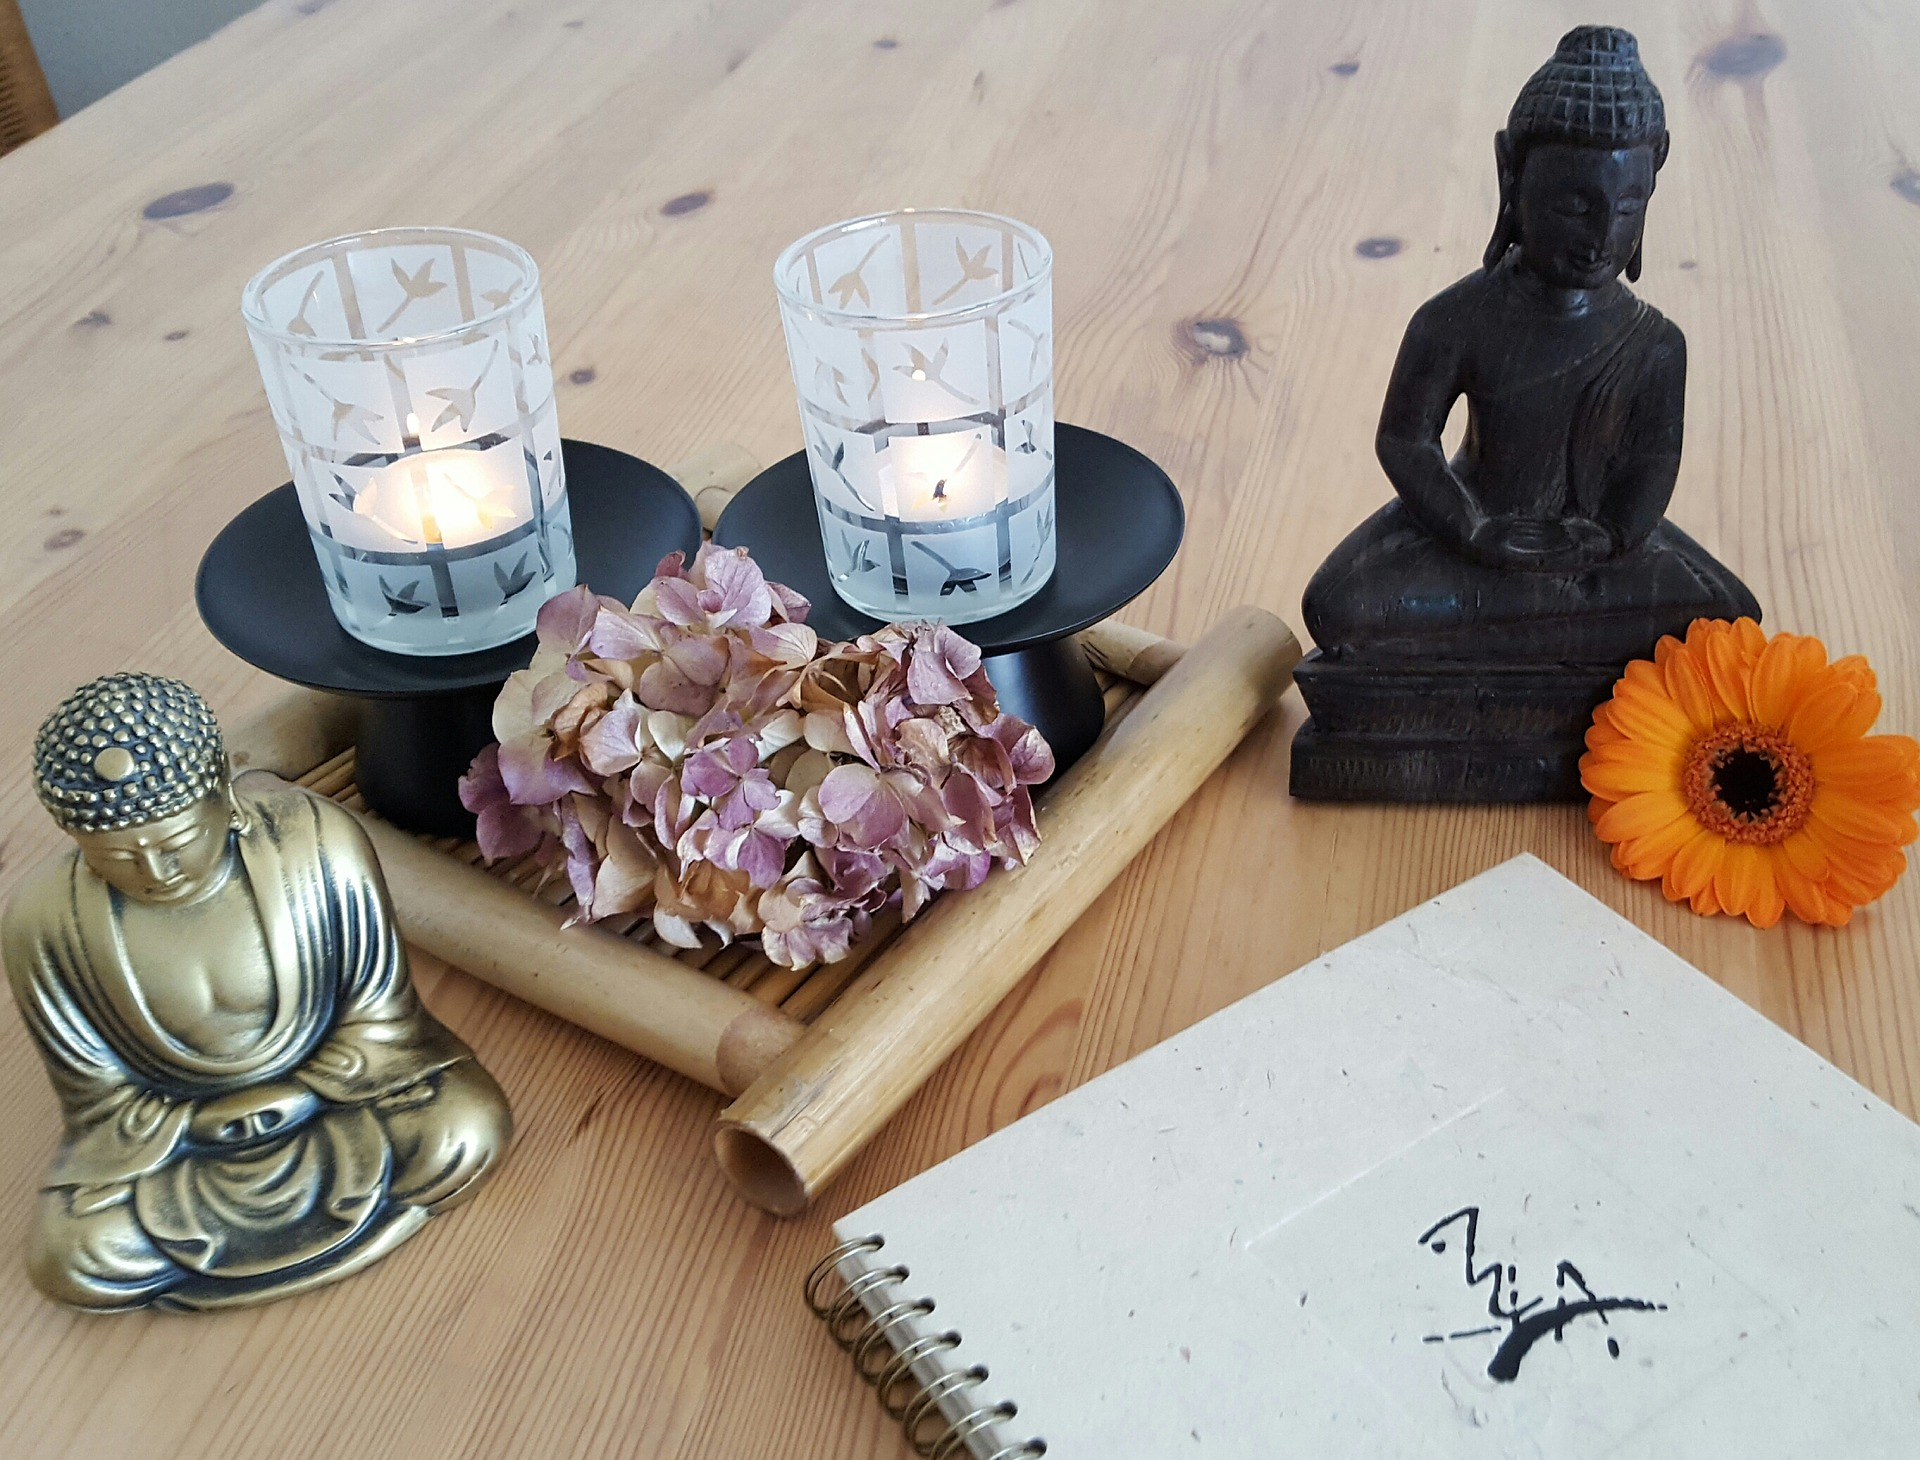 Massage and Wellness Workshops - We hold regular workshops across the state, from self massage to sensual massage, and aromatherapy workshops, you too can join and learn skills a bring the spa into your home.